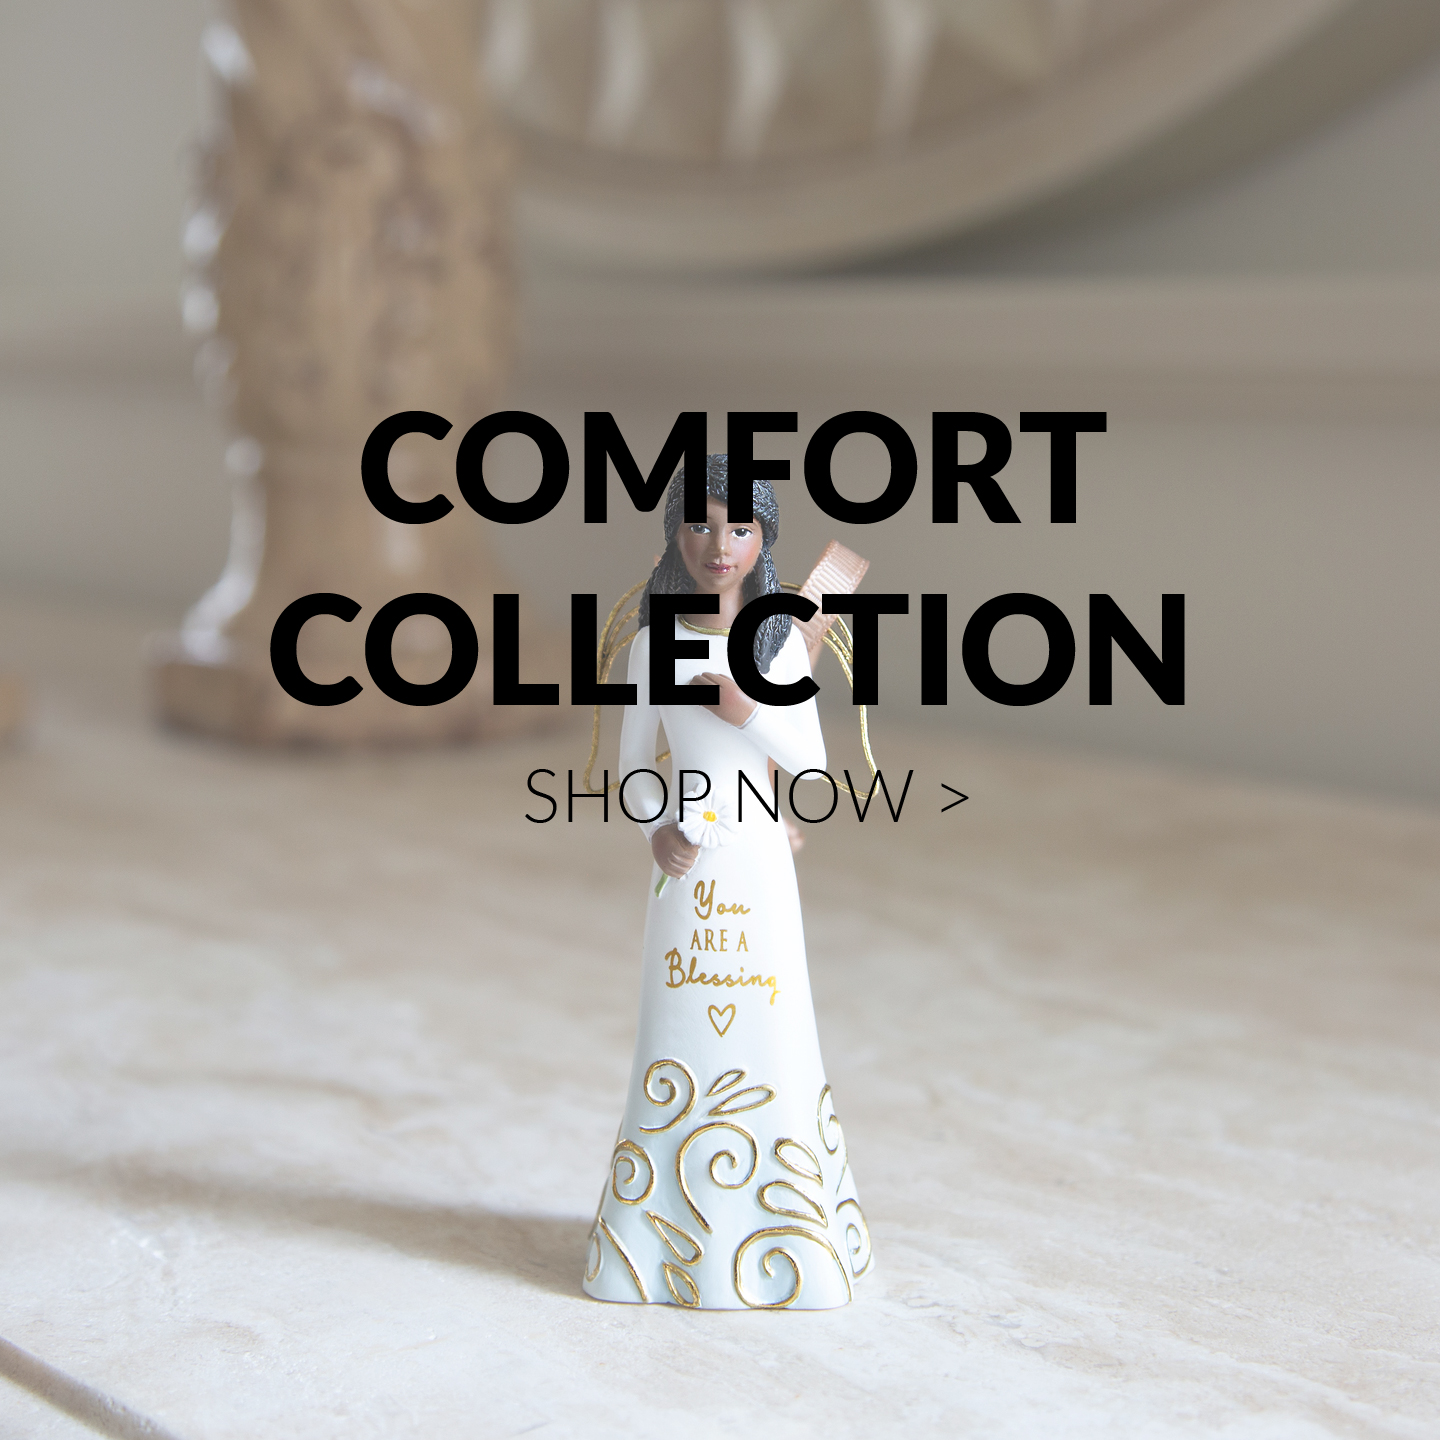 Comfort Collection